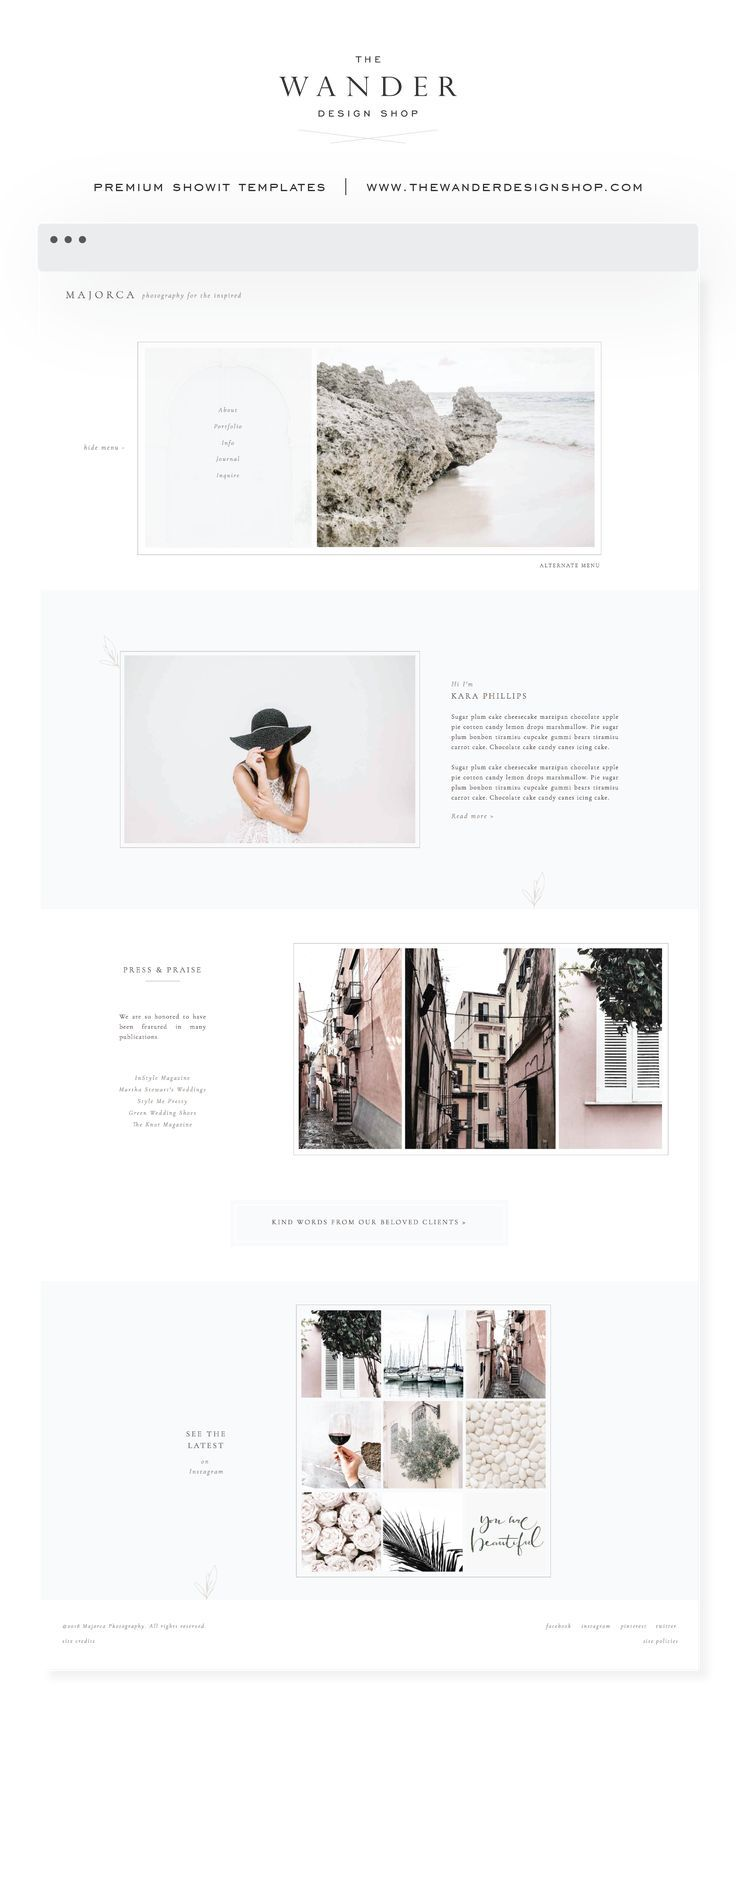 New showit website templates are available at the wander design shop